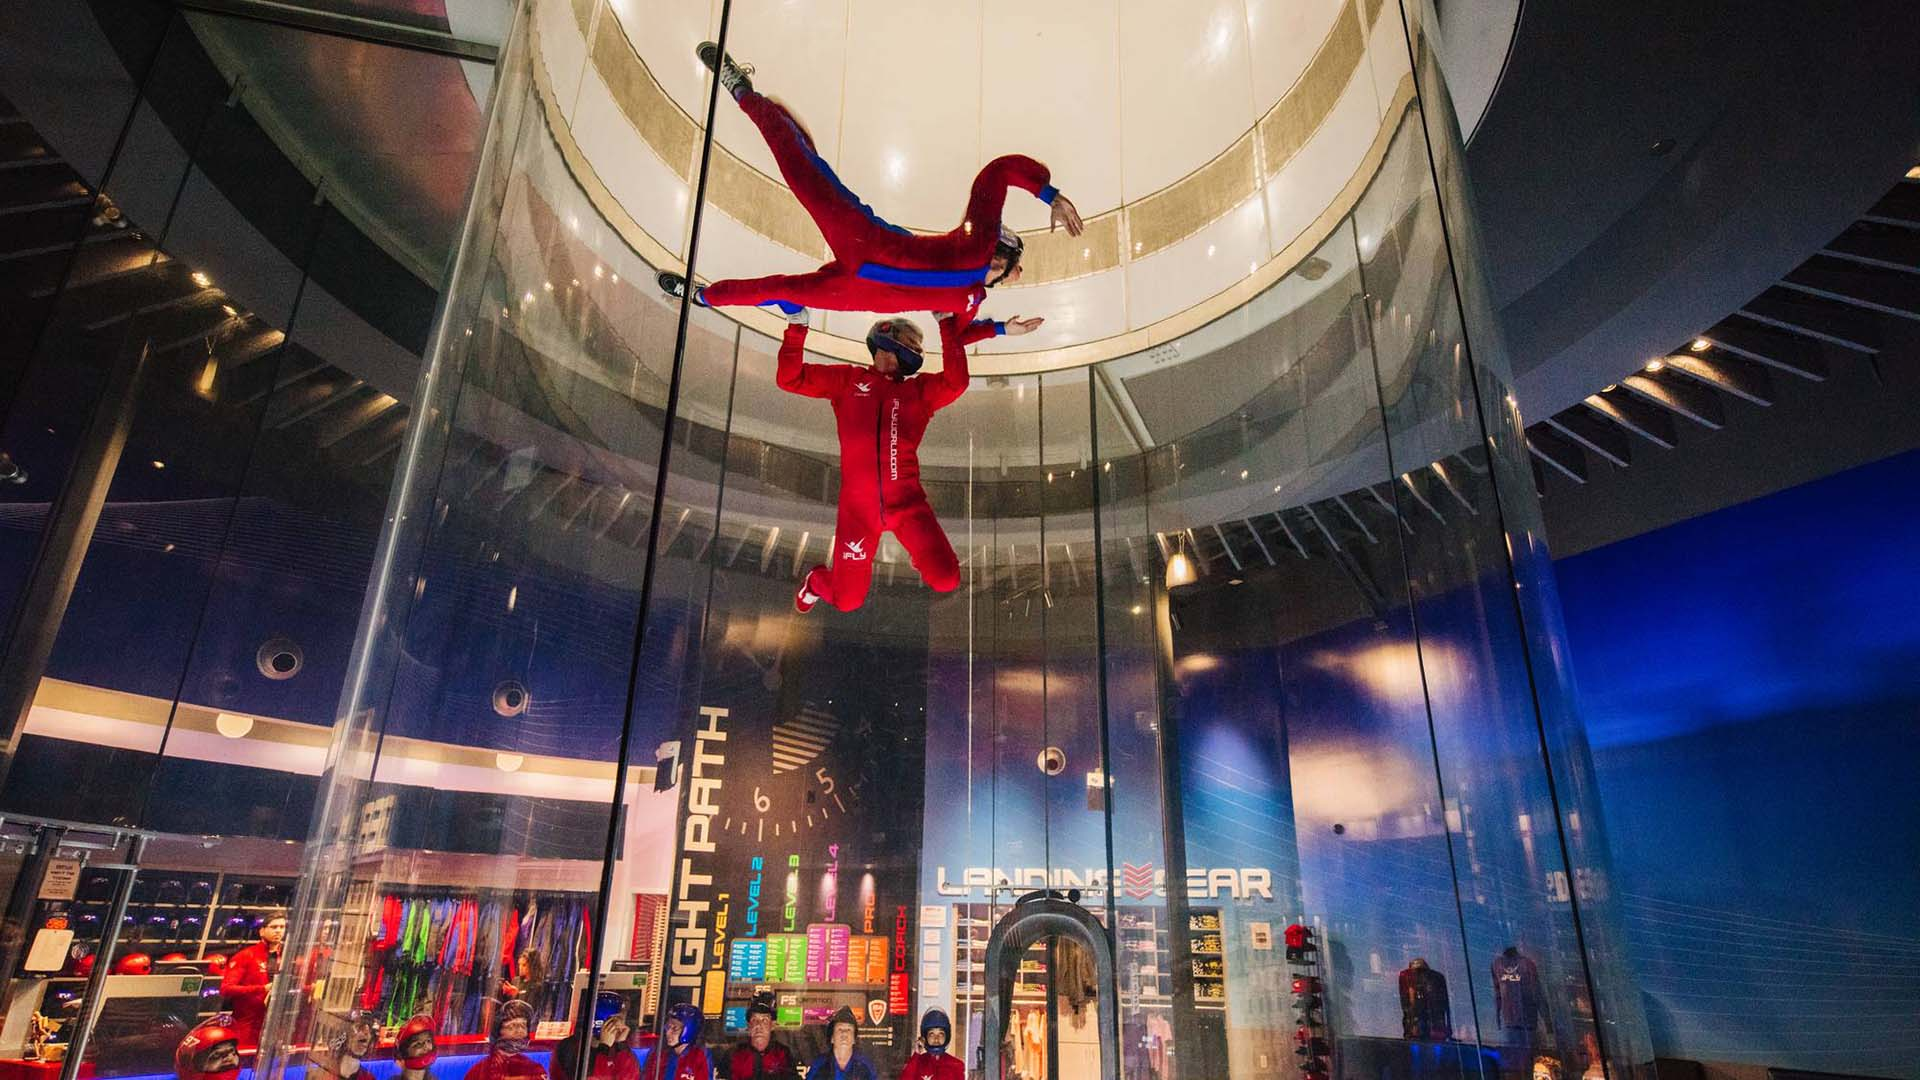 iFly Is Melbourne's Multimillion-Dollar New Indoor Skydiving Centre